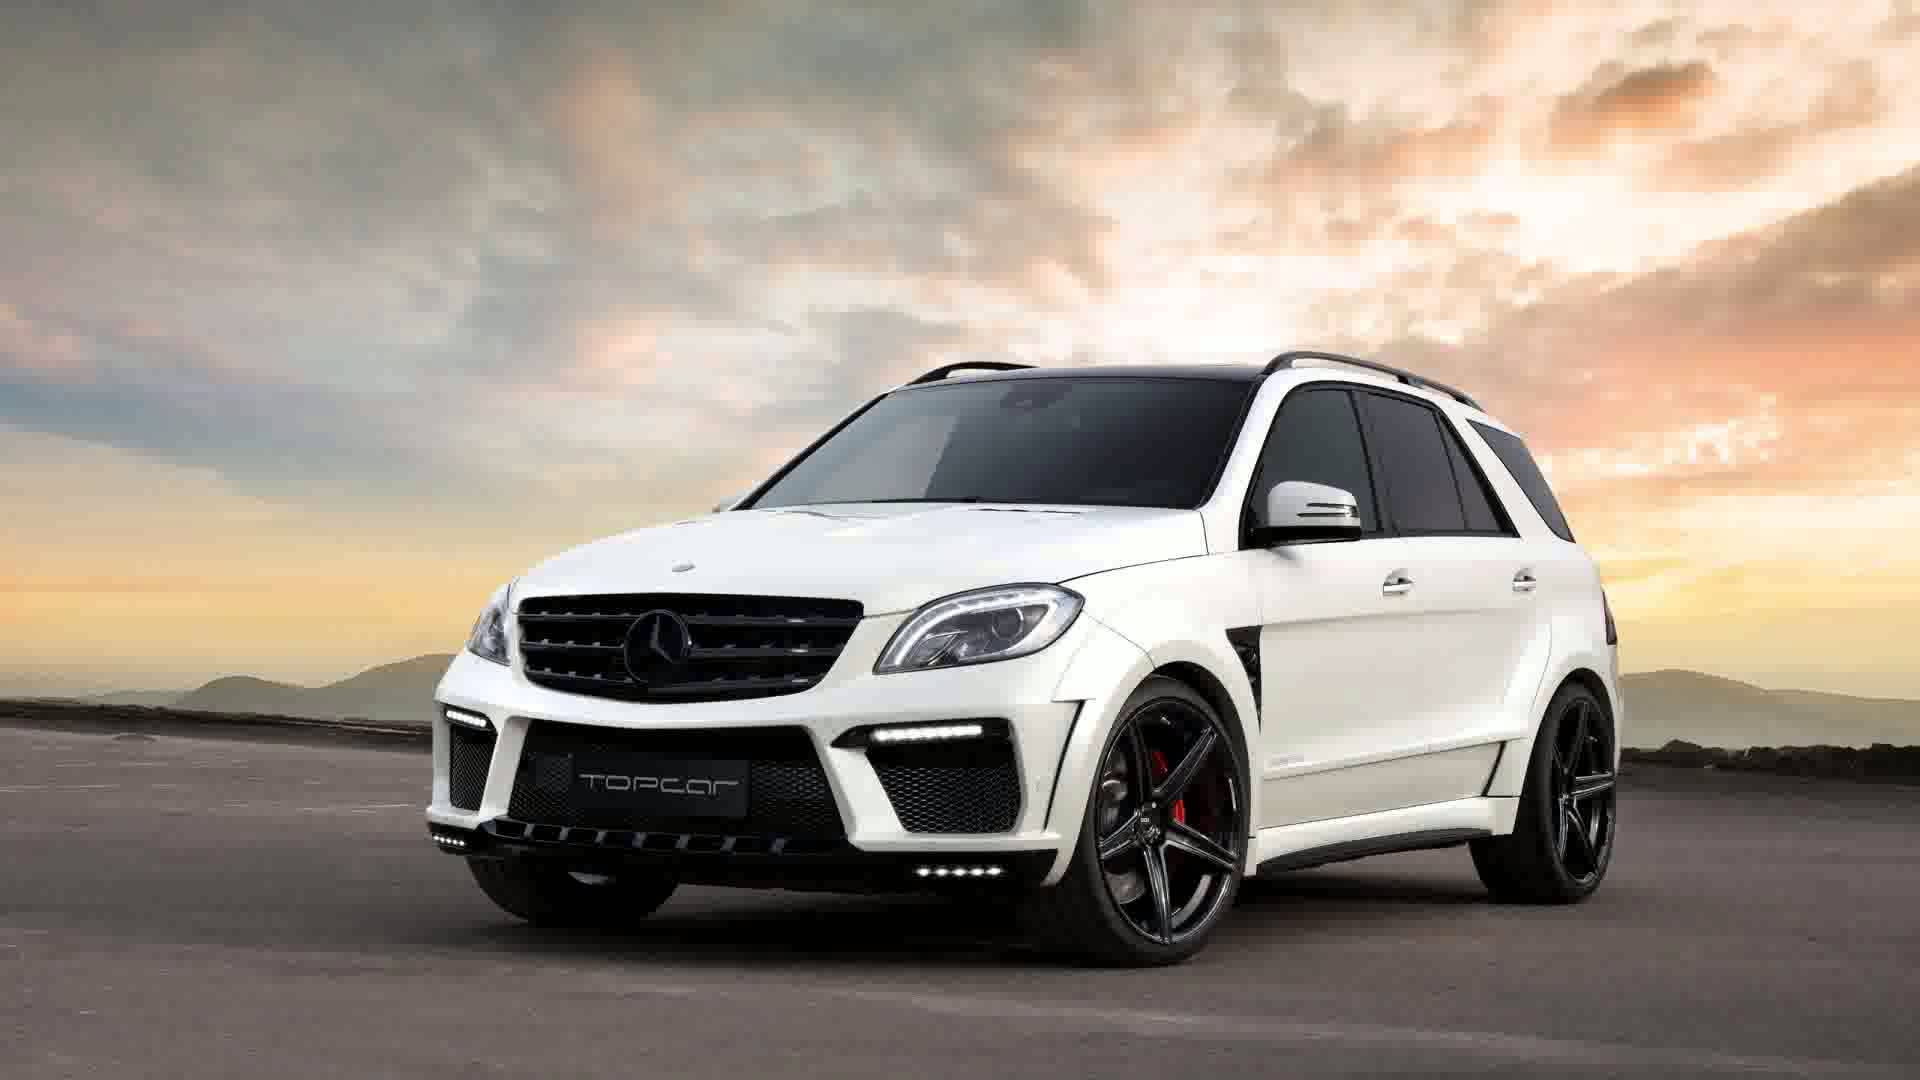 Mercedes benz m class ml63 amg 2015 suv drive for Mercedes benz amg suv